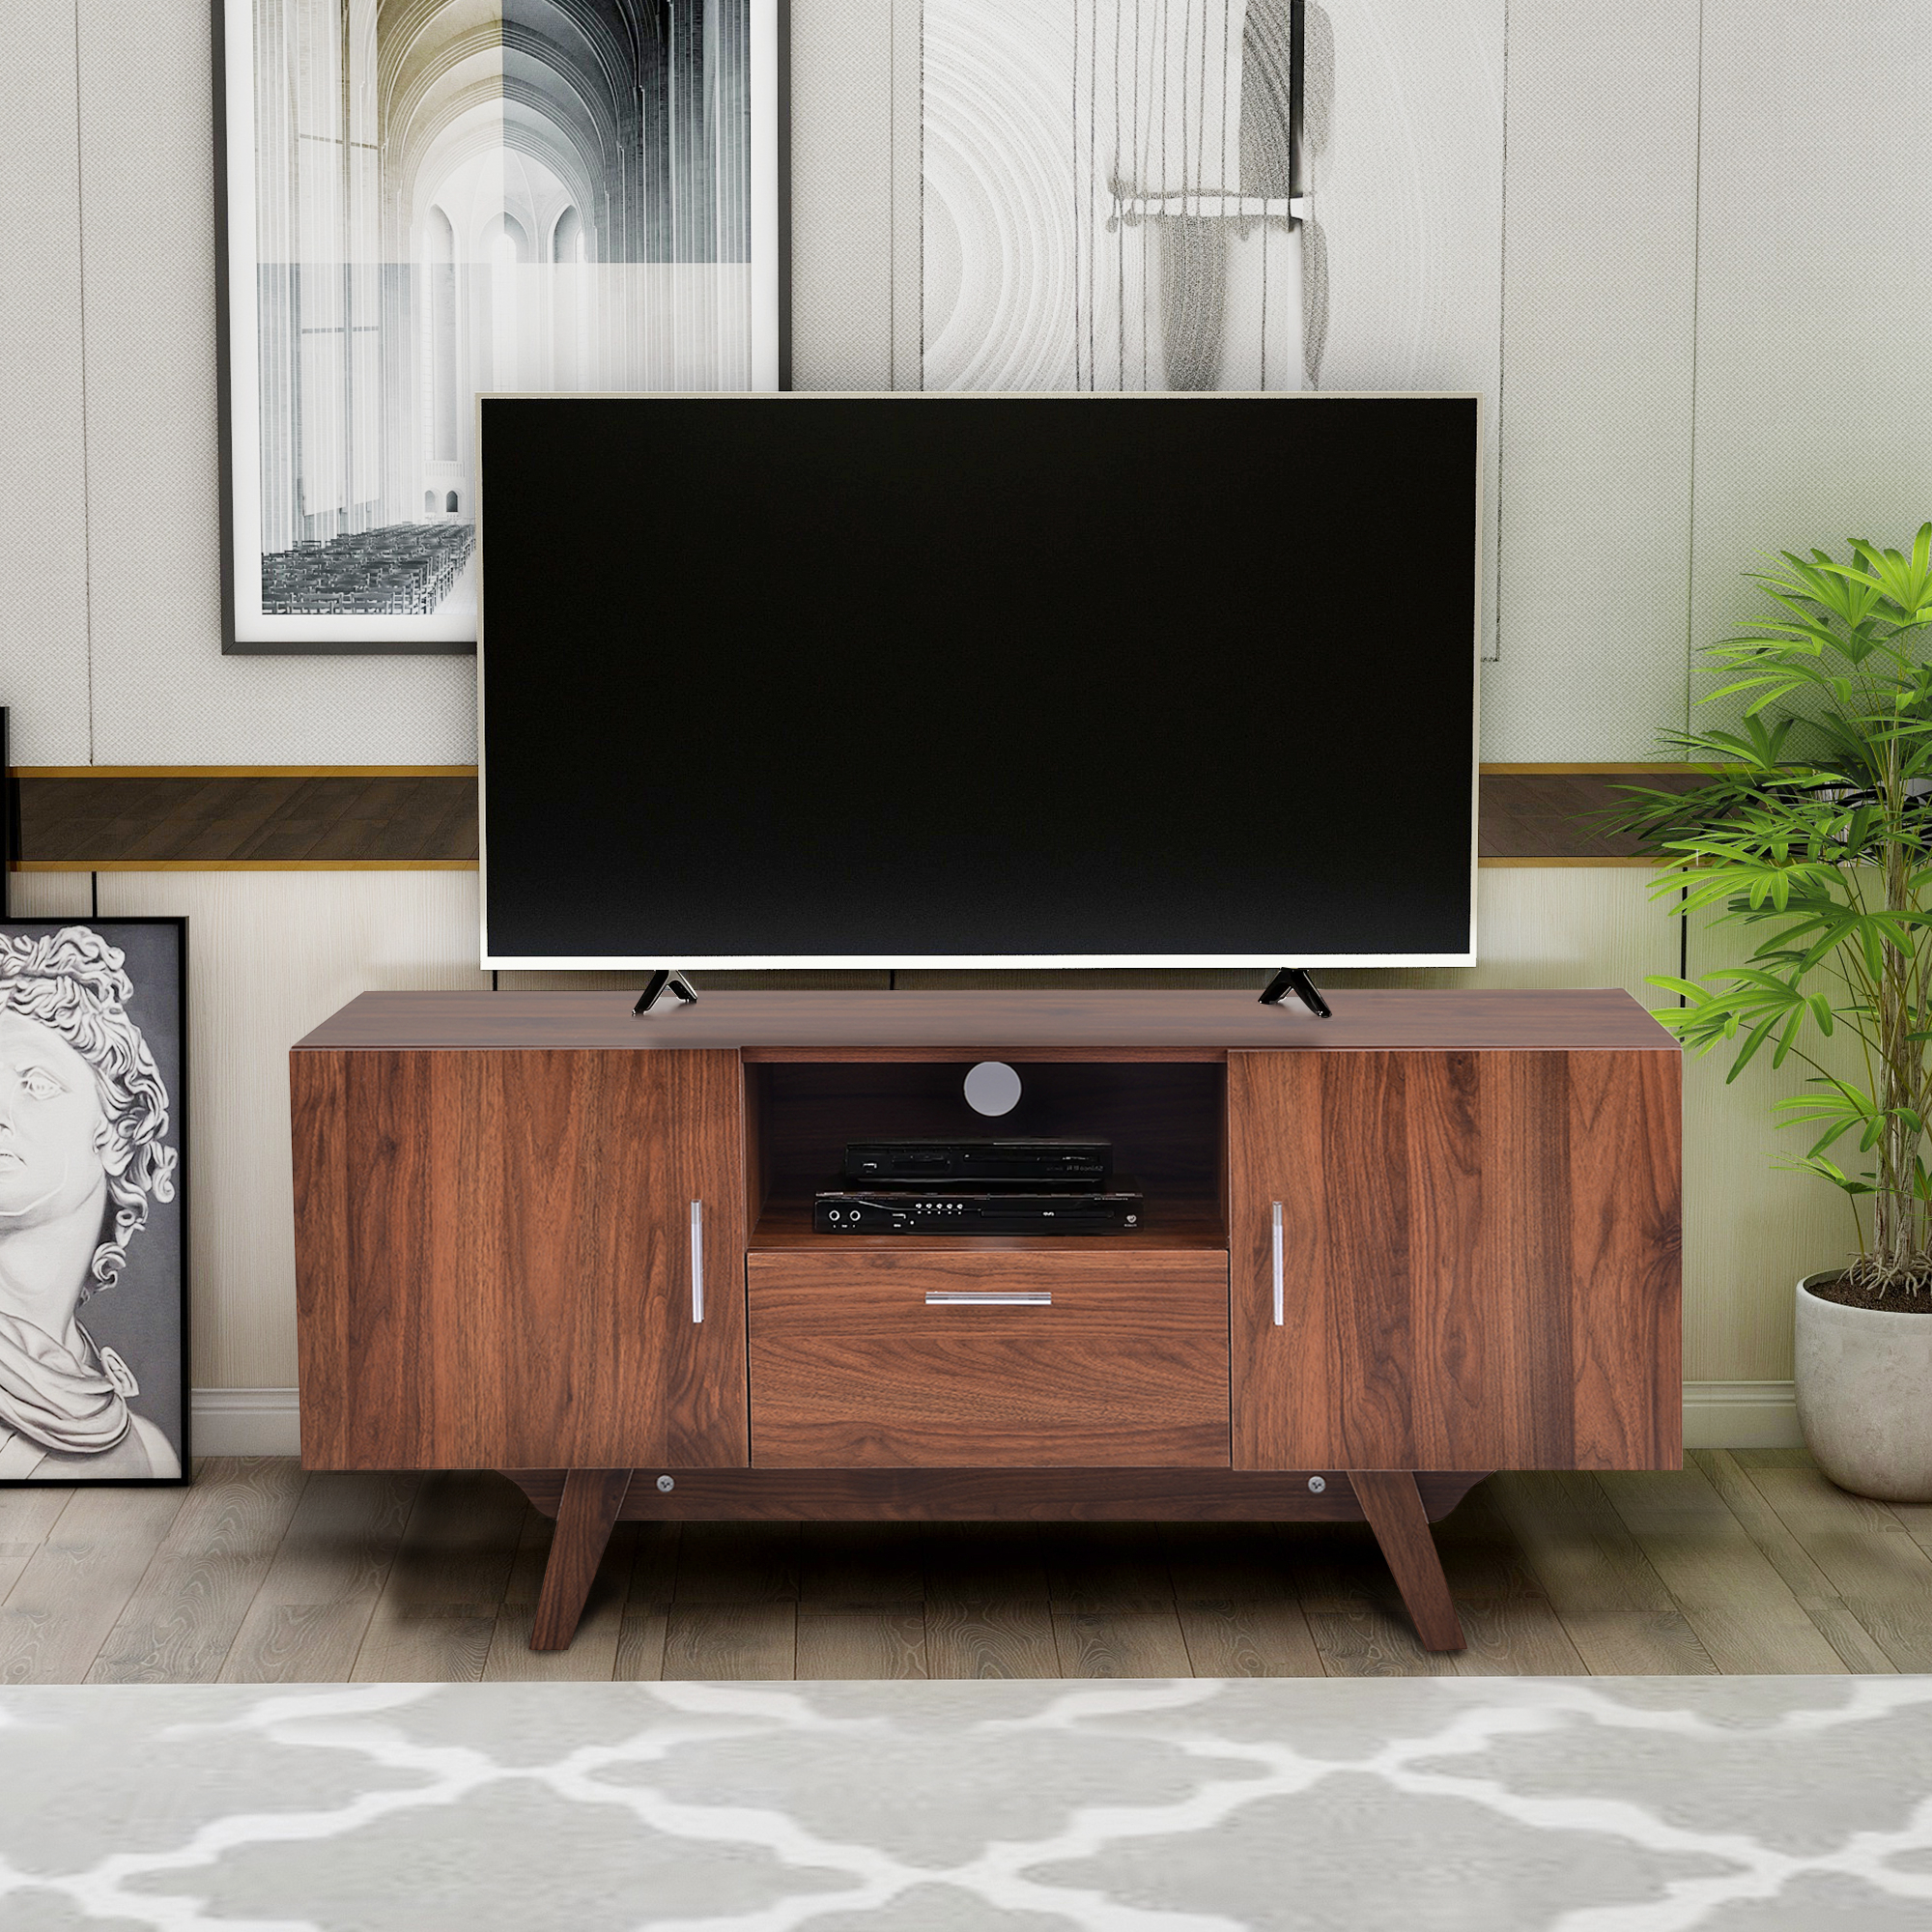 """Hommoo Tv Stand With Metal Legs For Tv's Up To 55 Inches Throughout Spellman Tv Stands For Tvs Up To 55"""" (View 11 of 20)"""